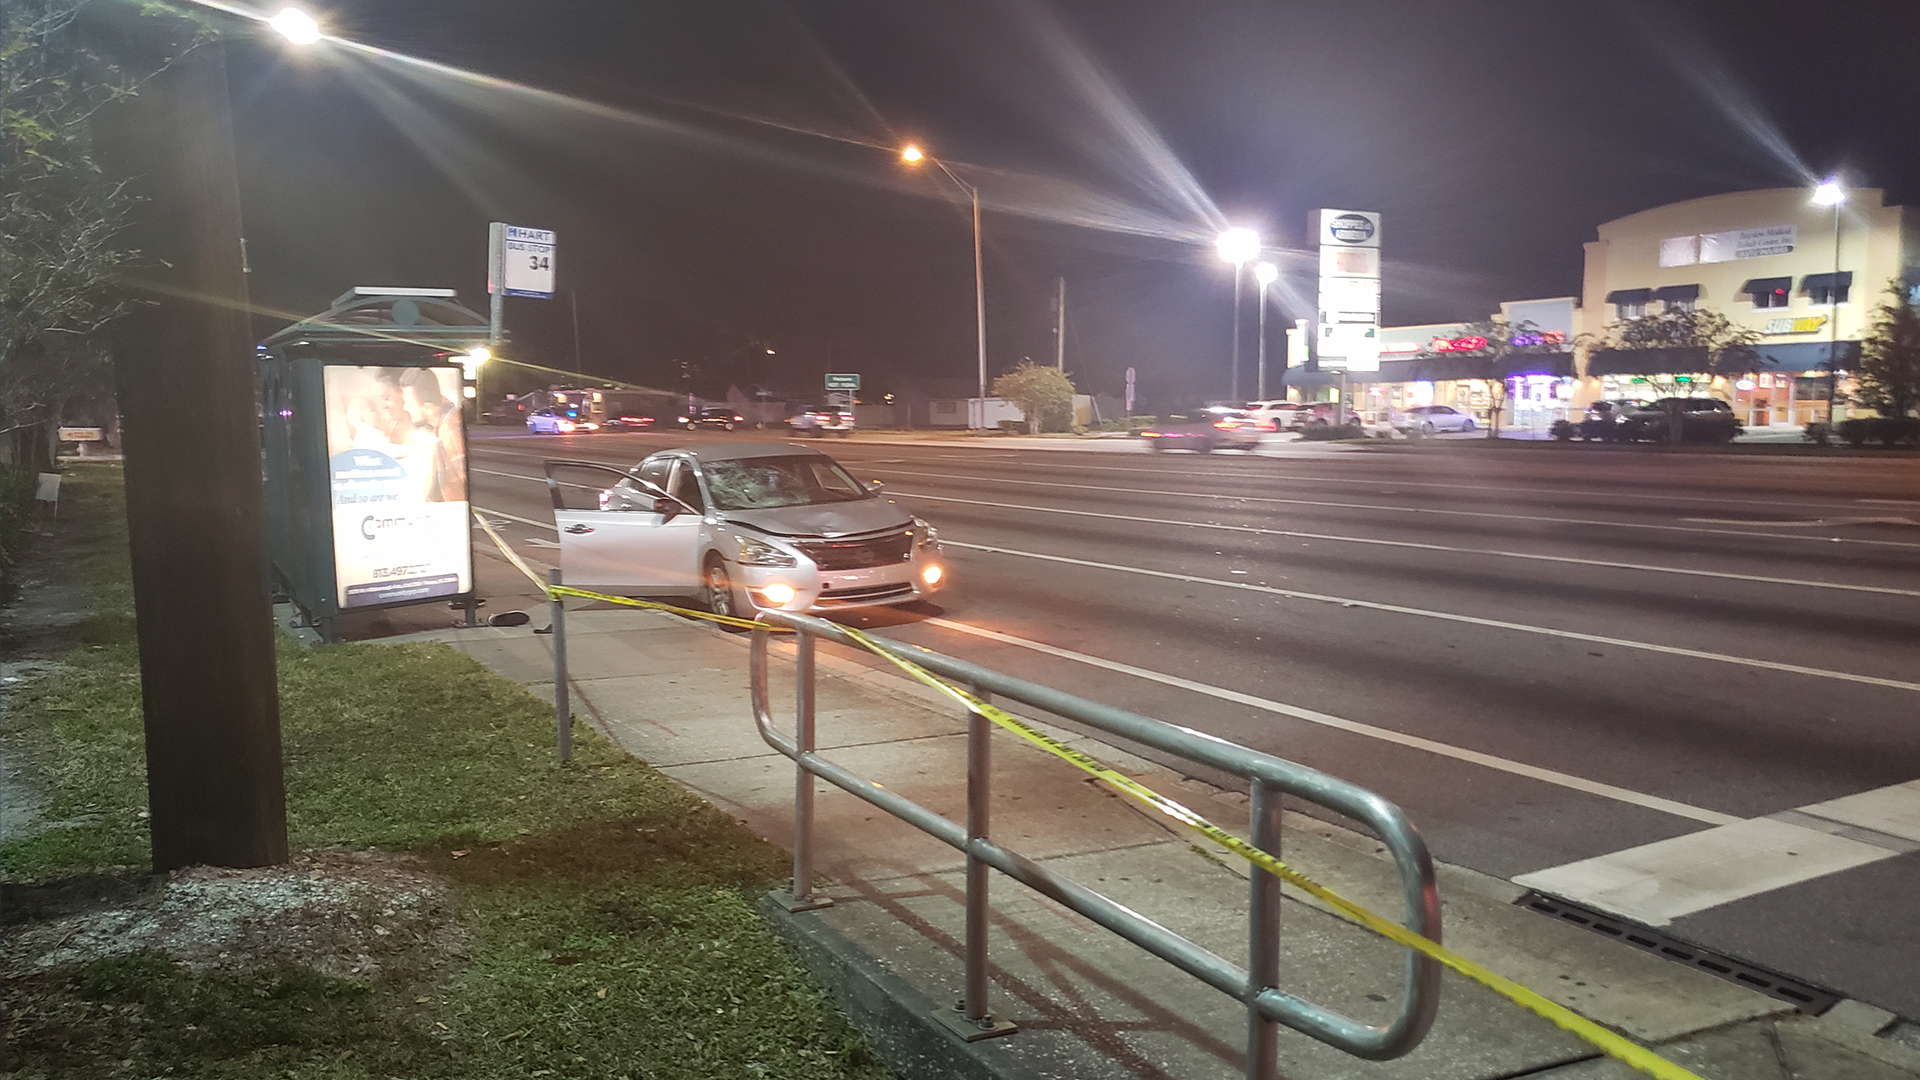 Police Investigating Pedestrian Hit By Car In Tampa Wfla